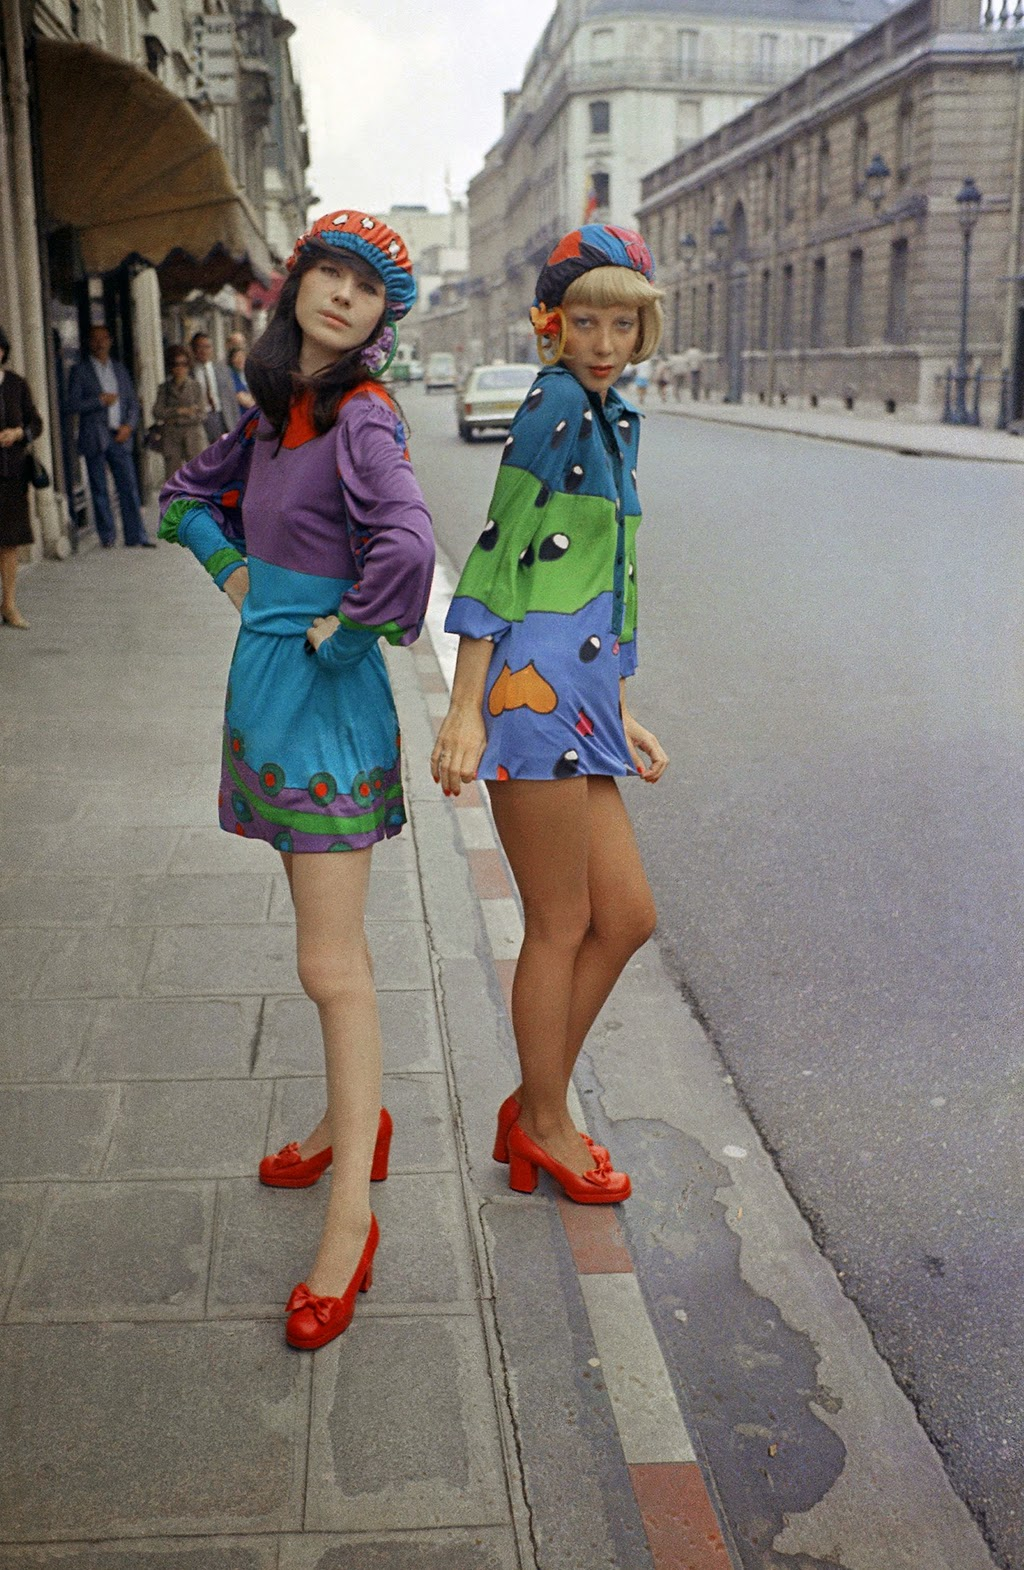 20 Photos Show The Beautiful Of The 1970s Fashion